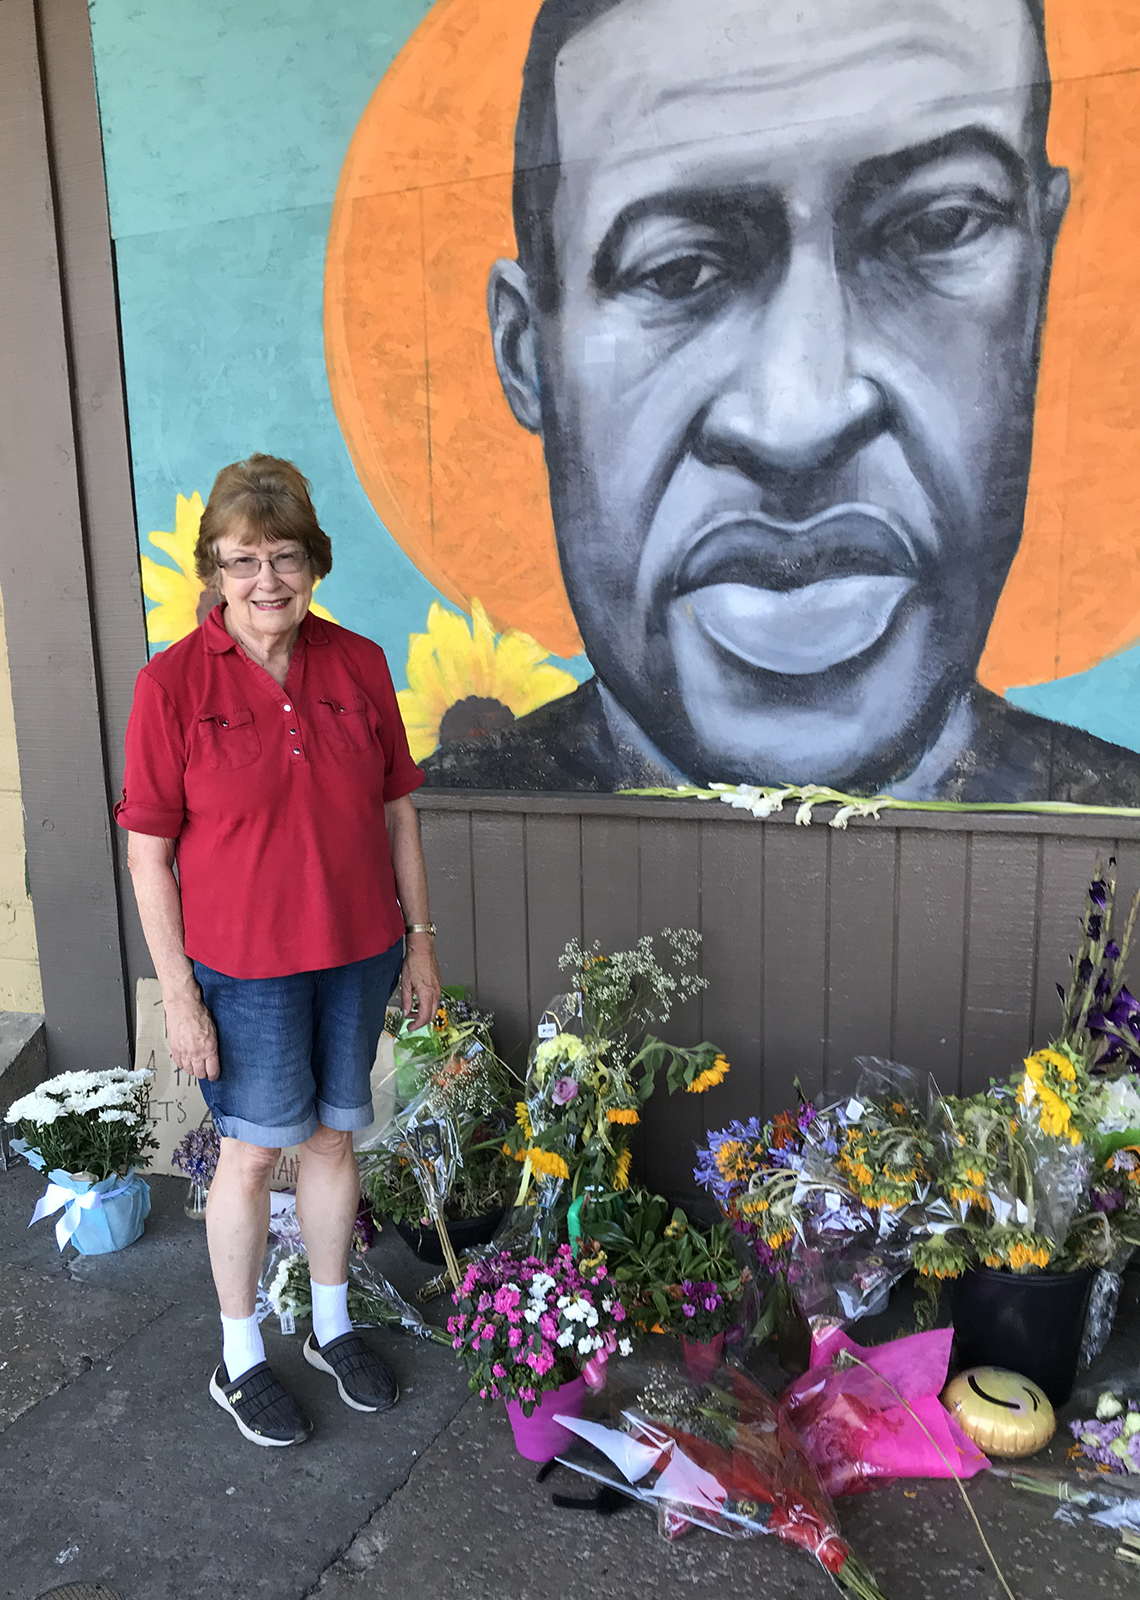 lois knowlton stands next to a memorial mural painted of george floyd that has piles of flowers laid underneath it